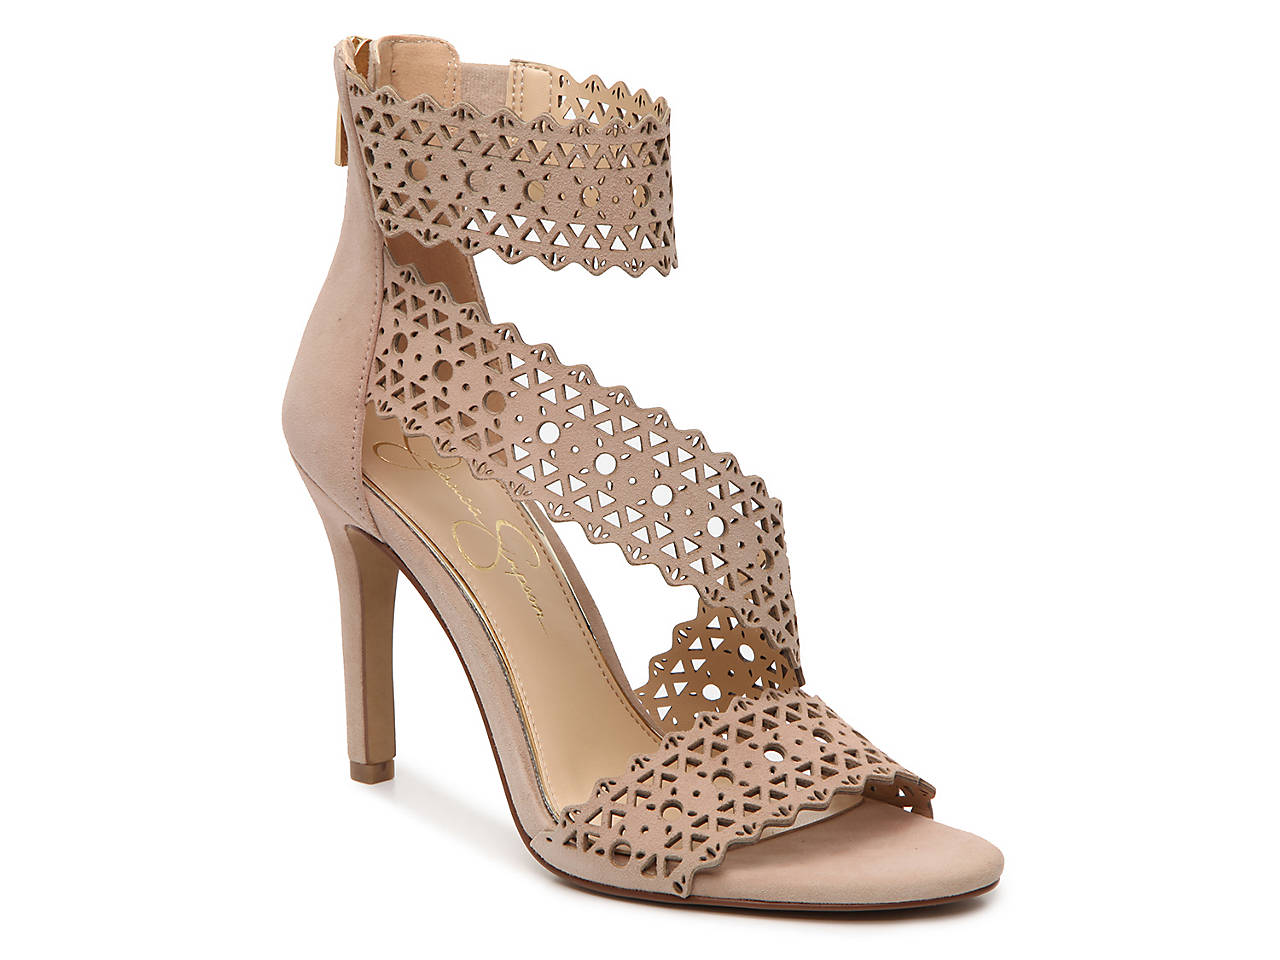 546ffdd4e0a7 Jessica Simpson Jastia Sandal Women s Shoes